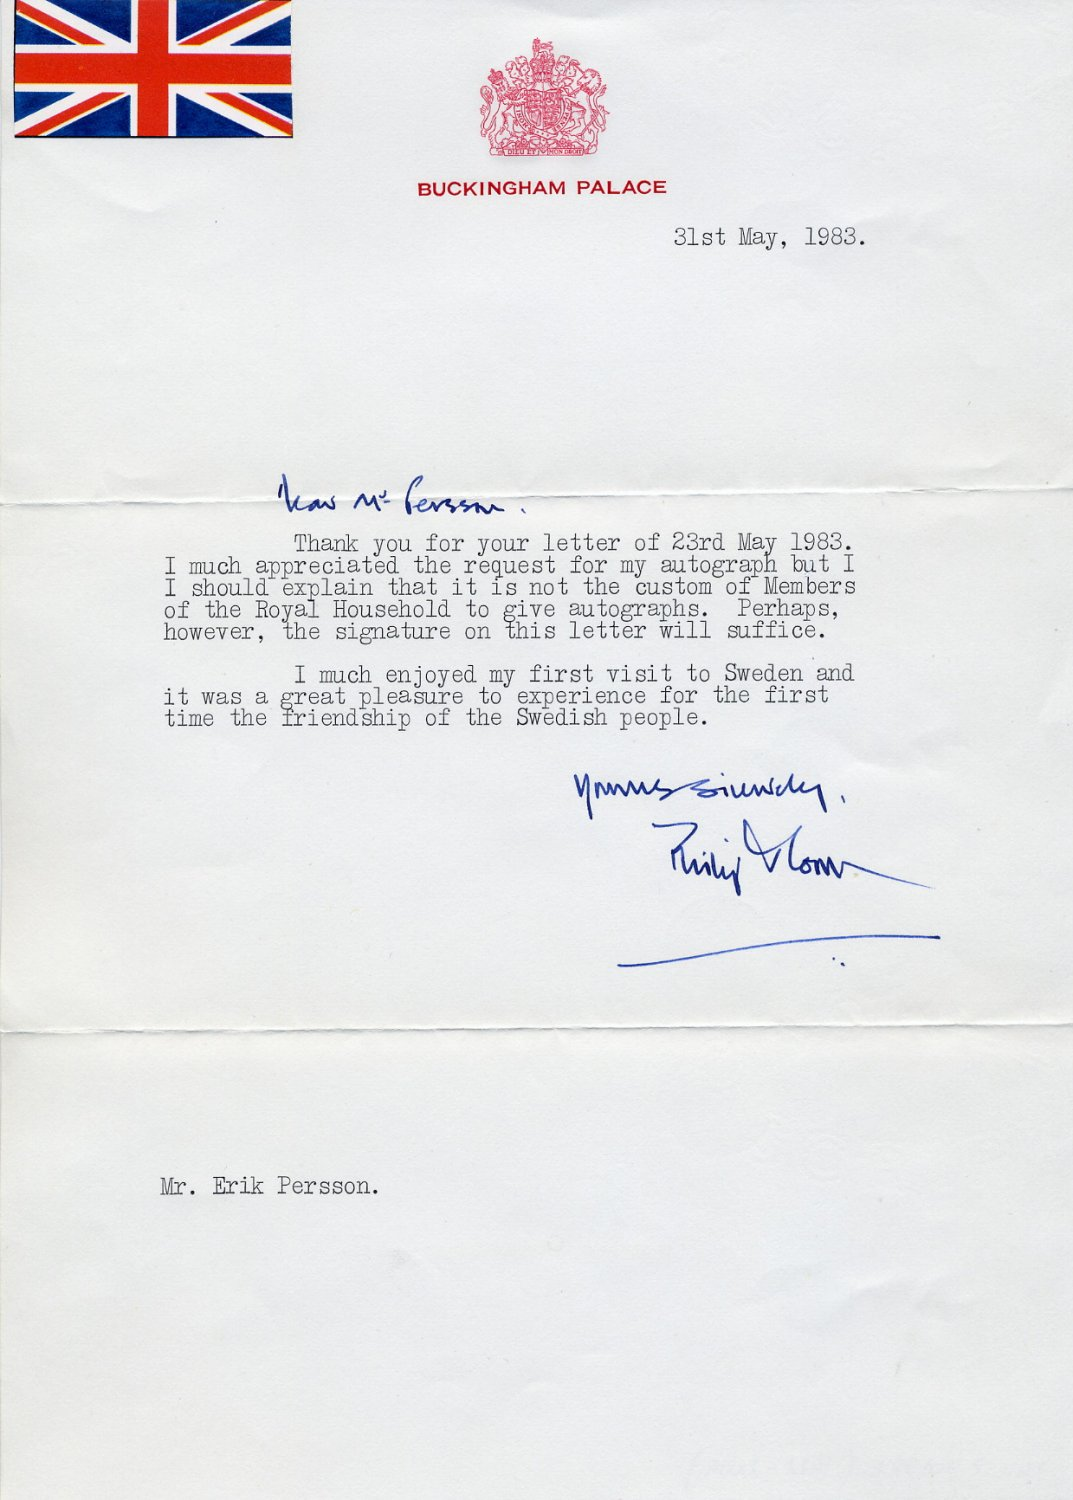 1977-86 Private Secretary to Queen Elizabeth II PHILIP MOORE Typed Letter Signed 1983